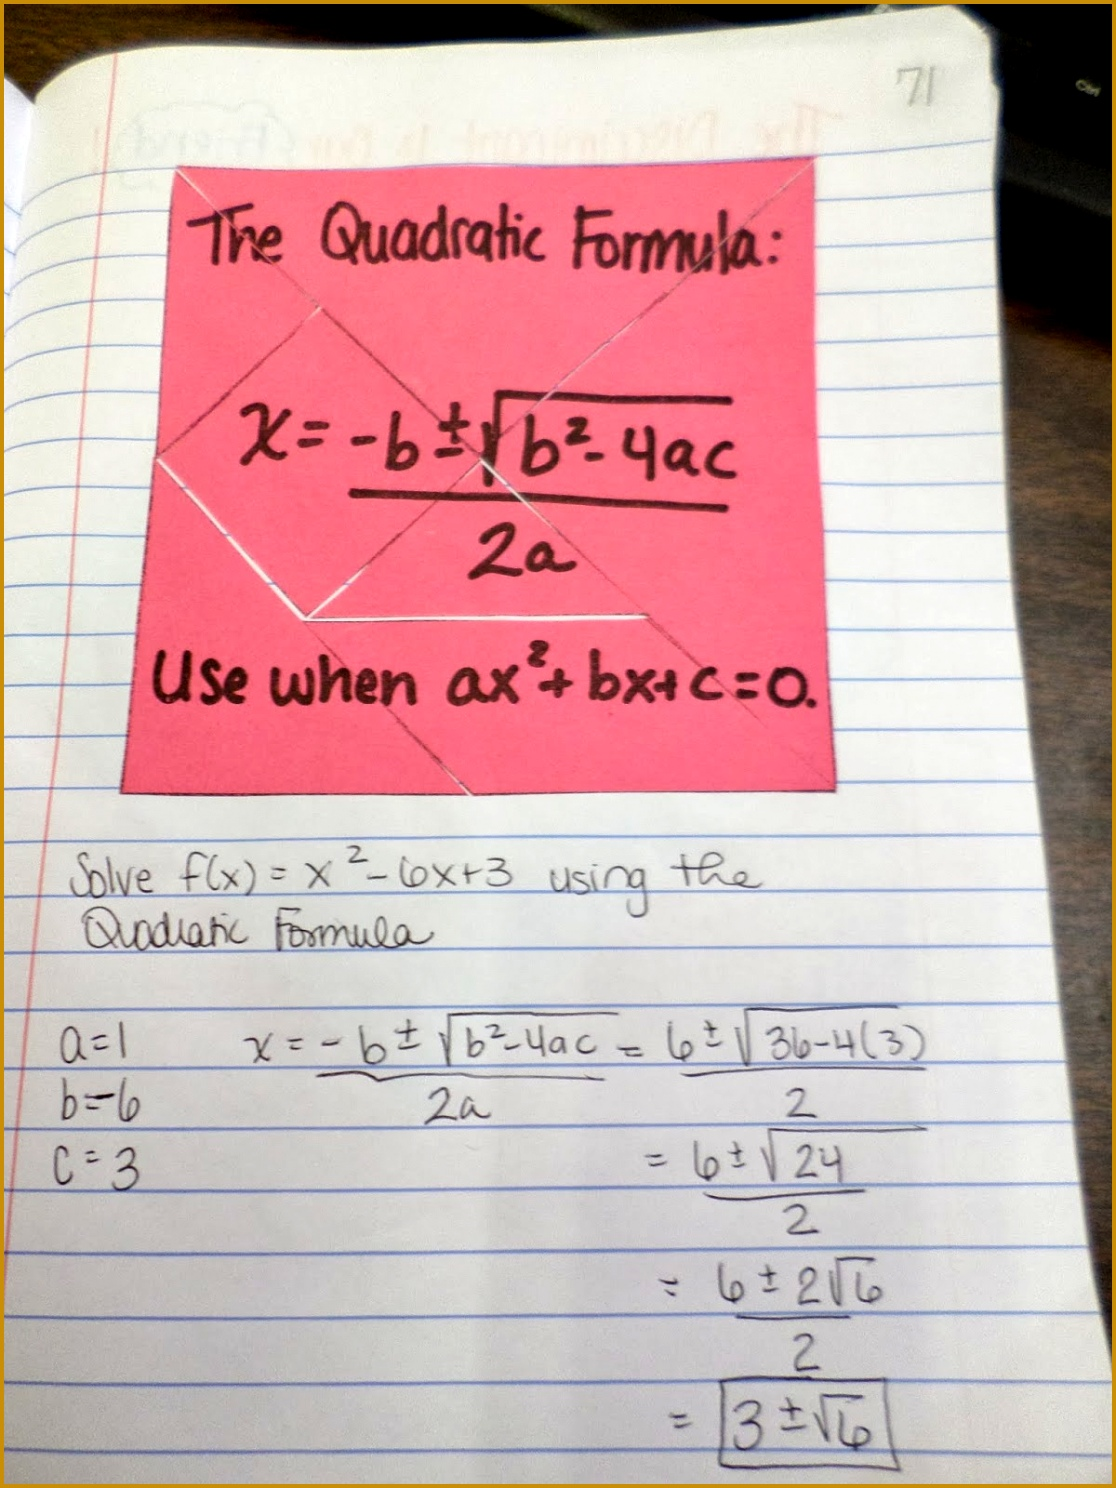 3 Solving Quadratic Equations Using The Quadratic Formula